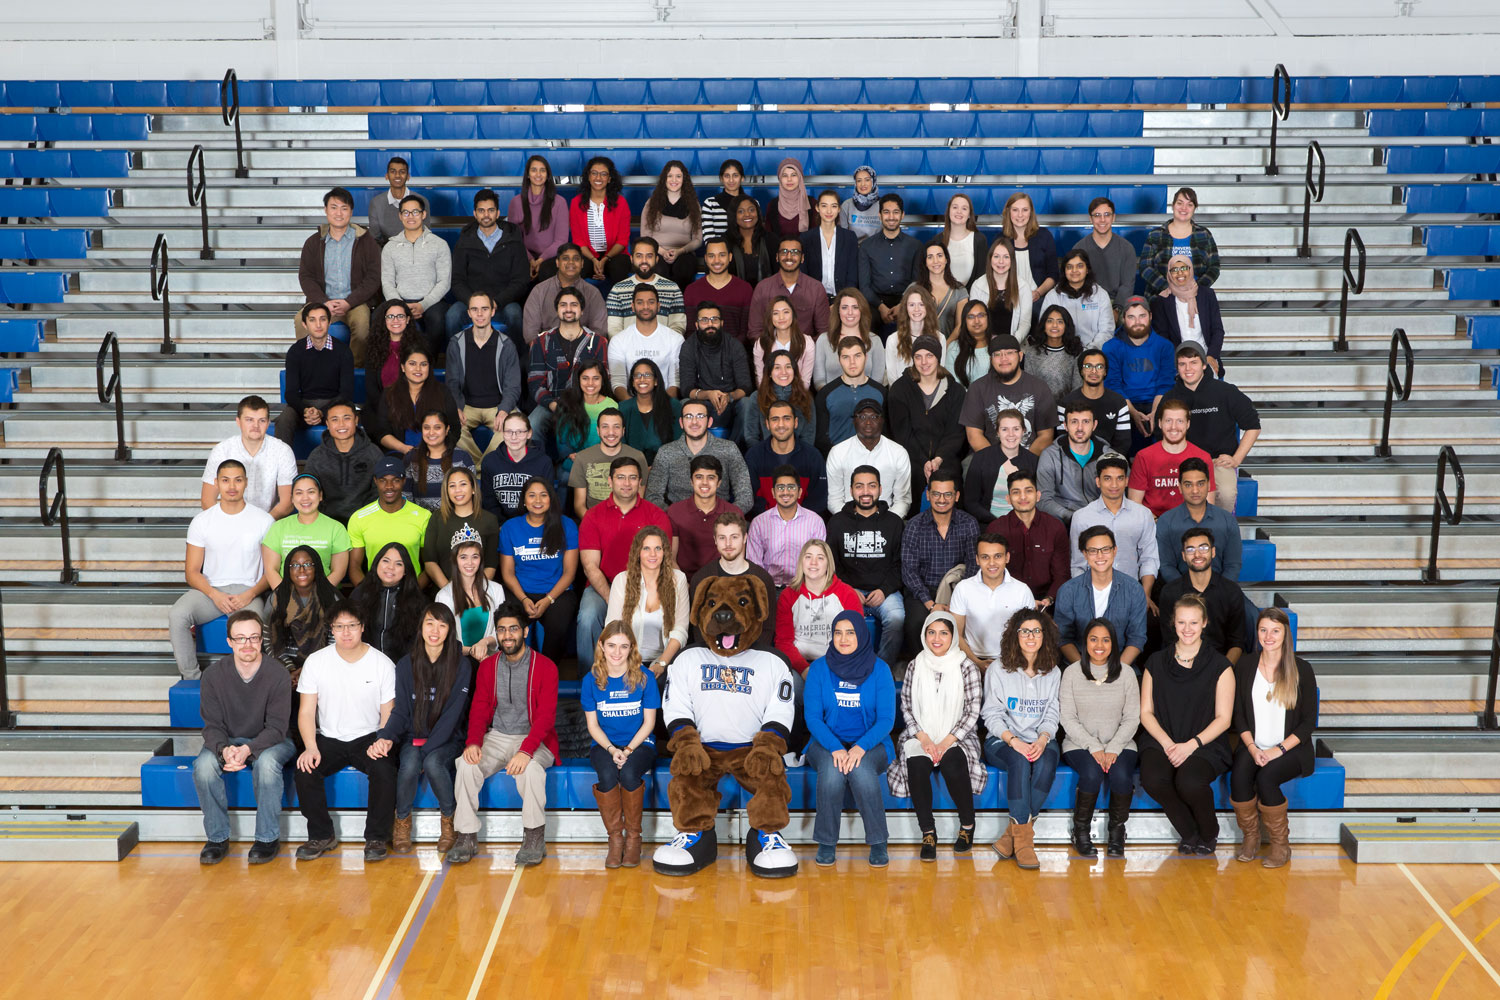 Class of 2017 Photo Sitting